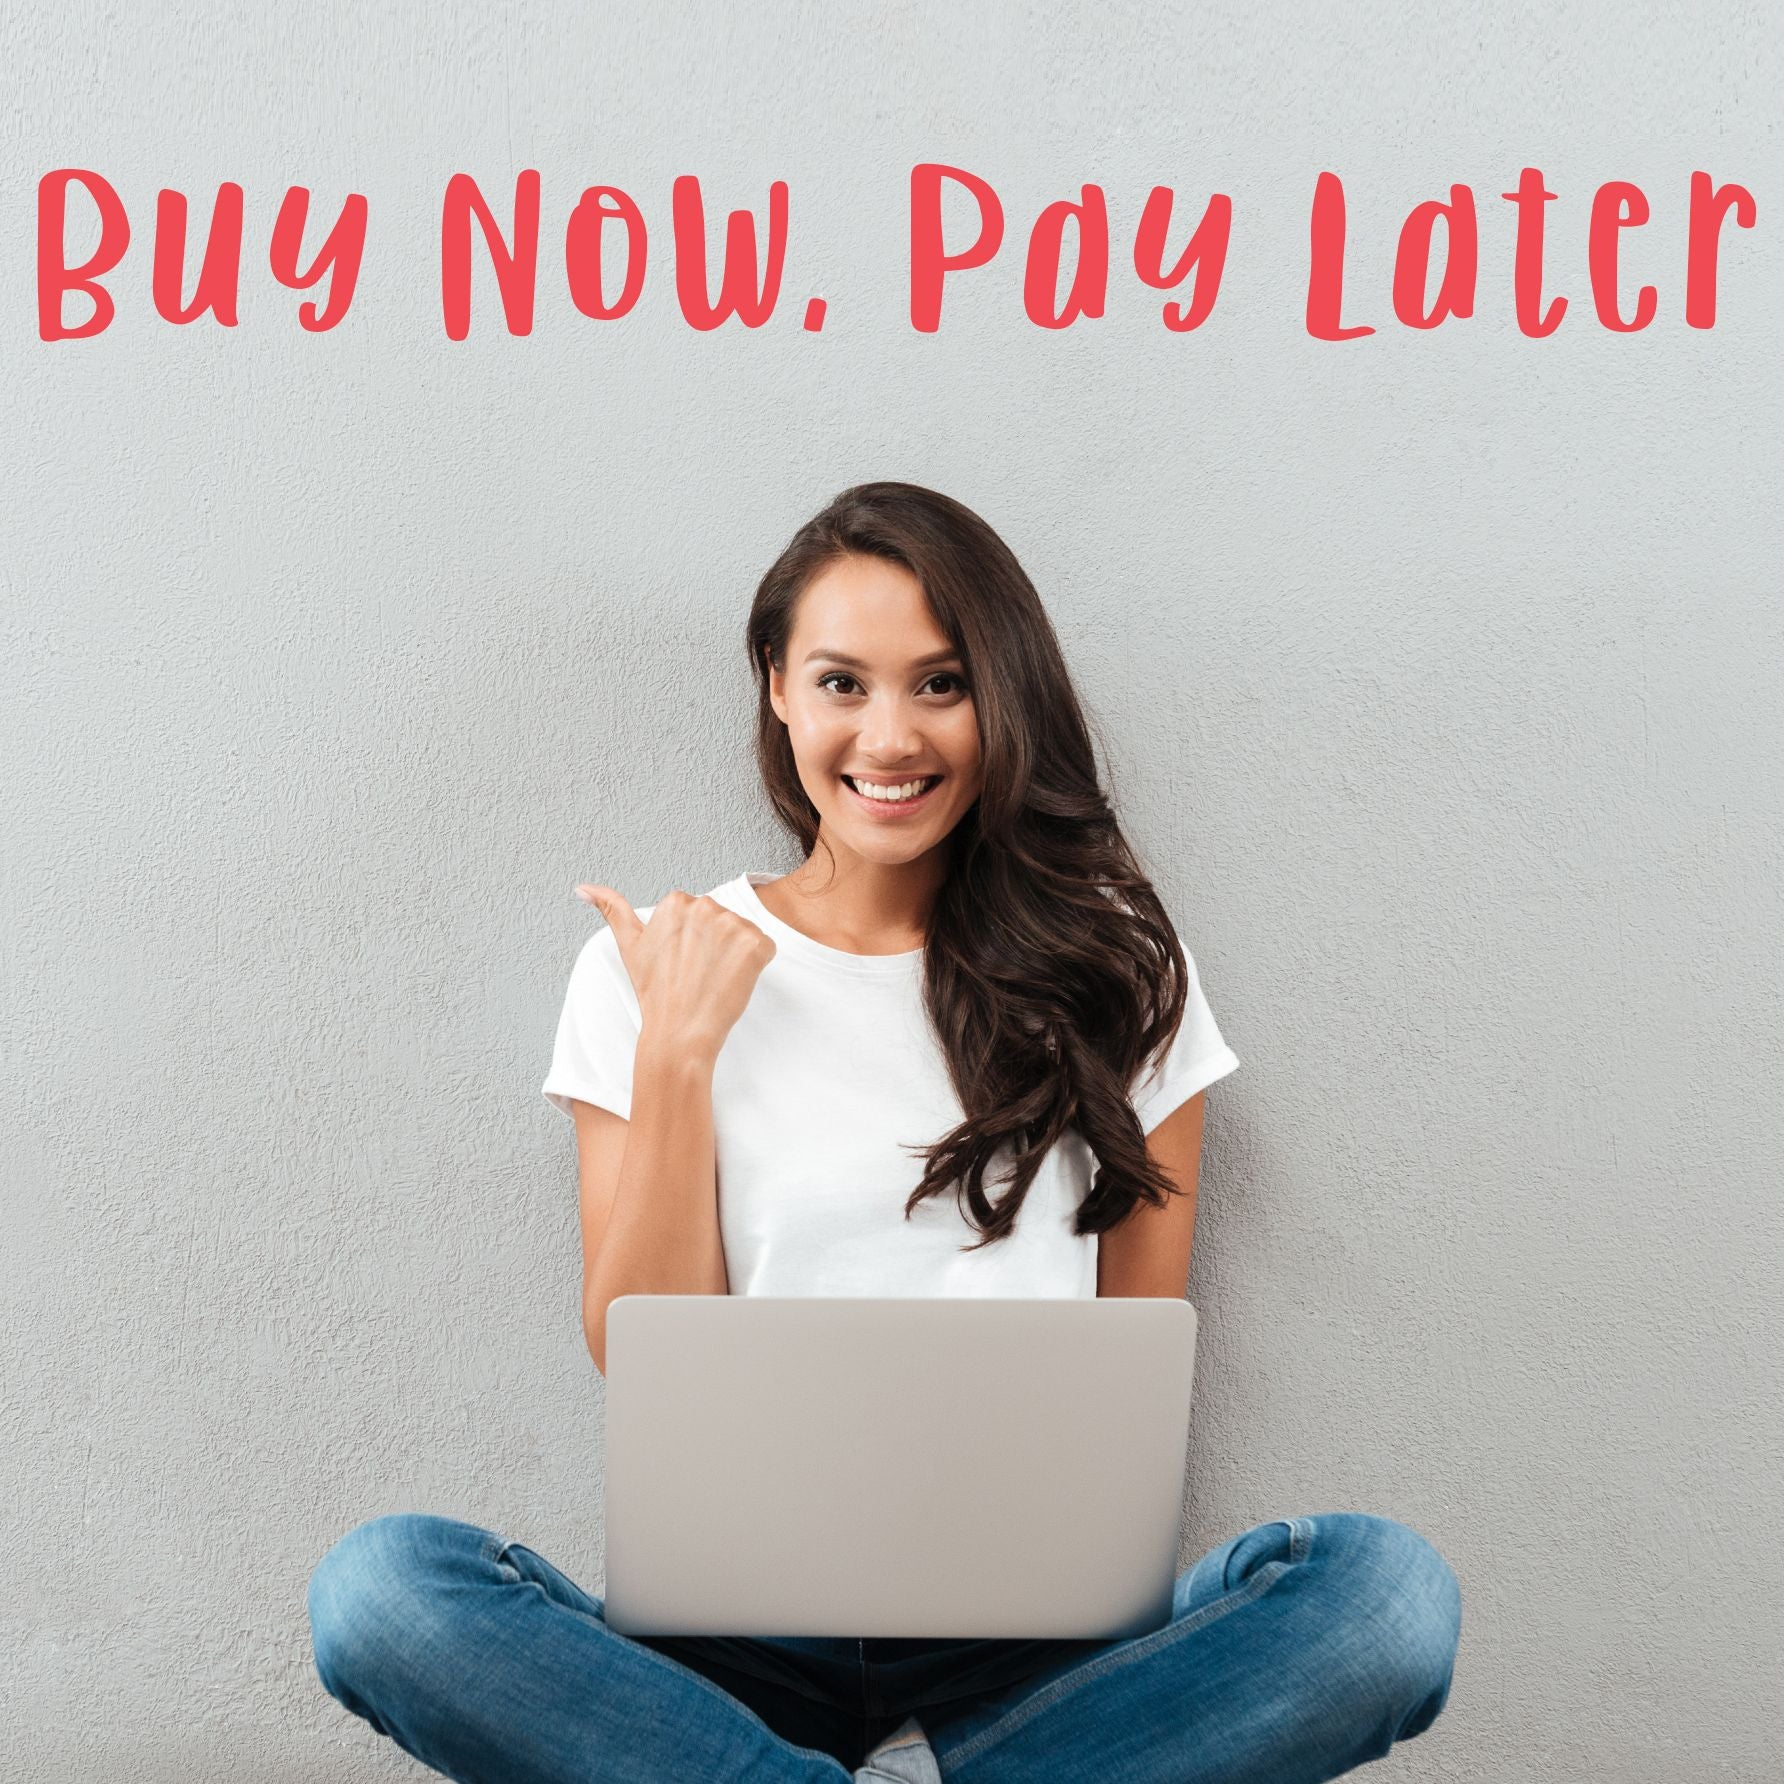 FurnitureMattressDirect- Buy Now Pay Later